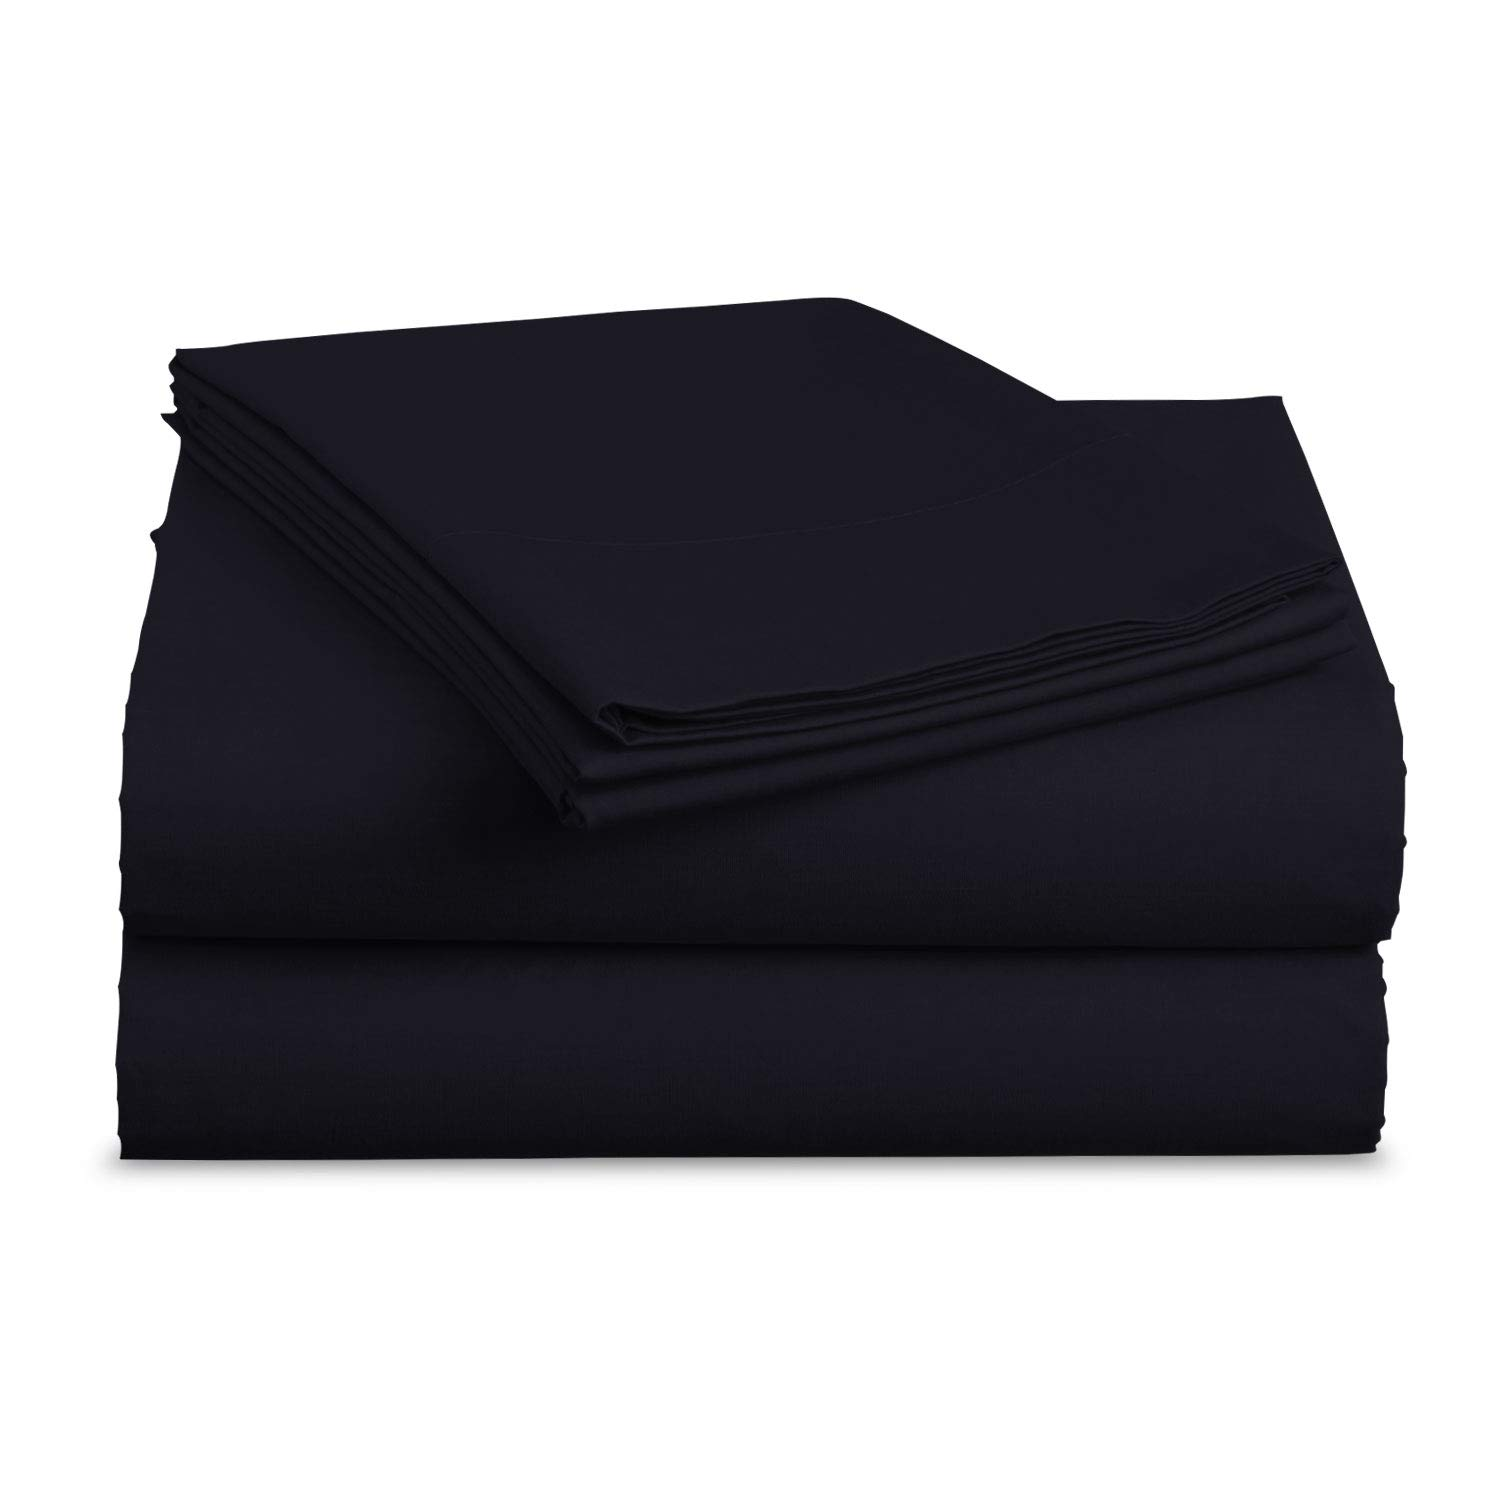 BASIC CHOICE Bed Sheet Set - Brushed Microfiber 2000 Bedding - Wrinkle, Fade, Stain Resistant - Hypoallergenic - 4 Piece (Cal King, Navy)